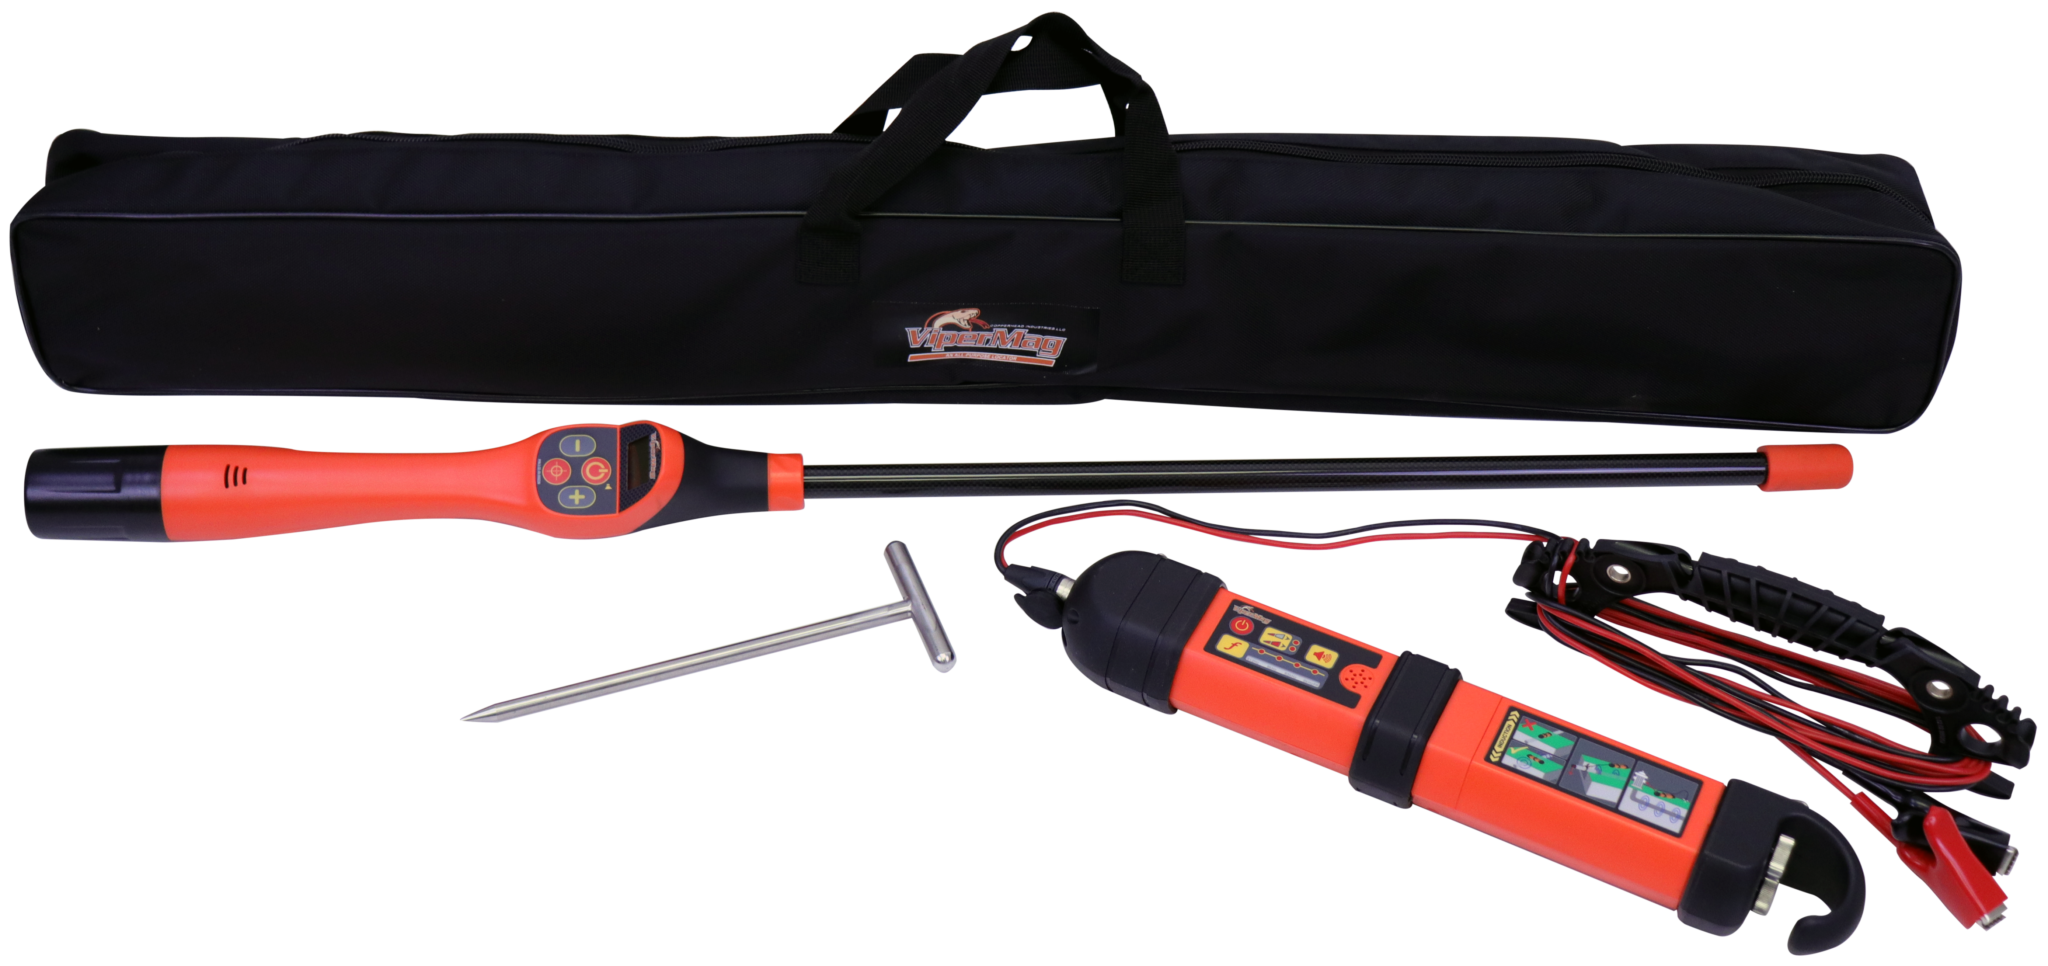 Metal detector and active frequency locator for locating underground utilities